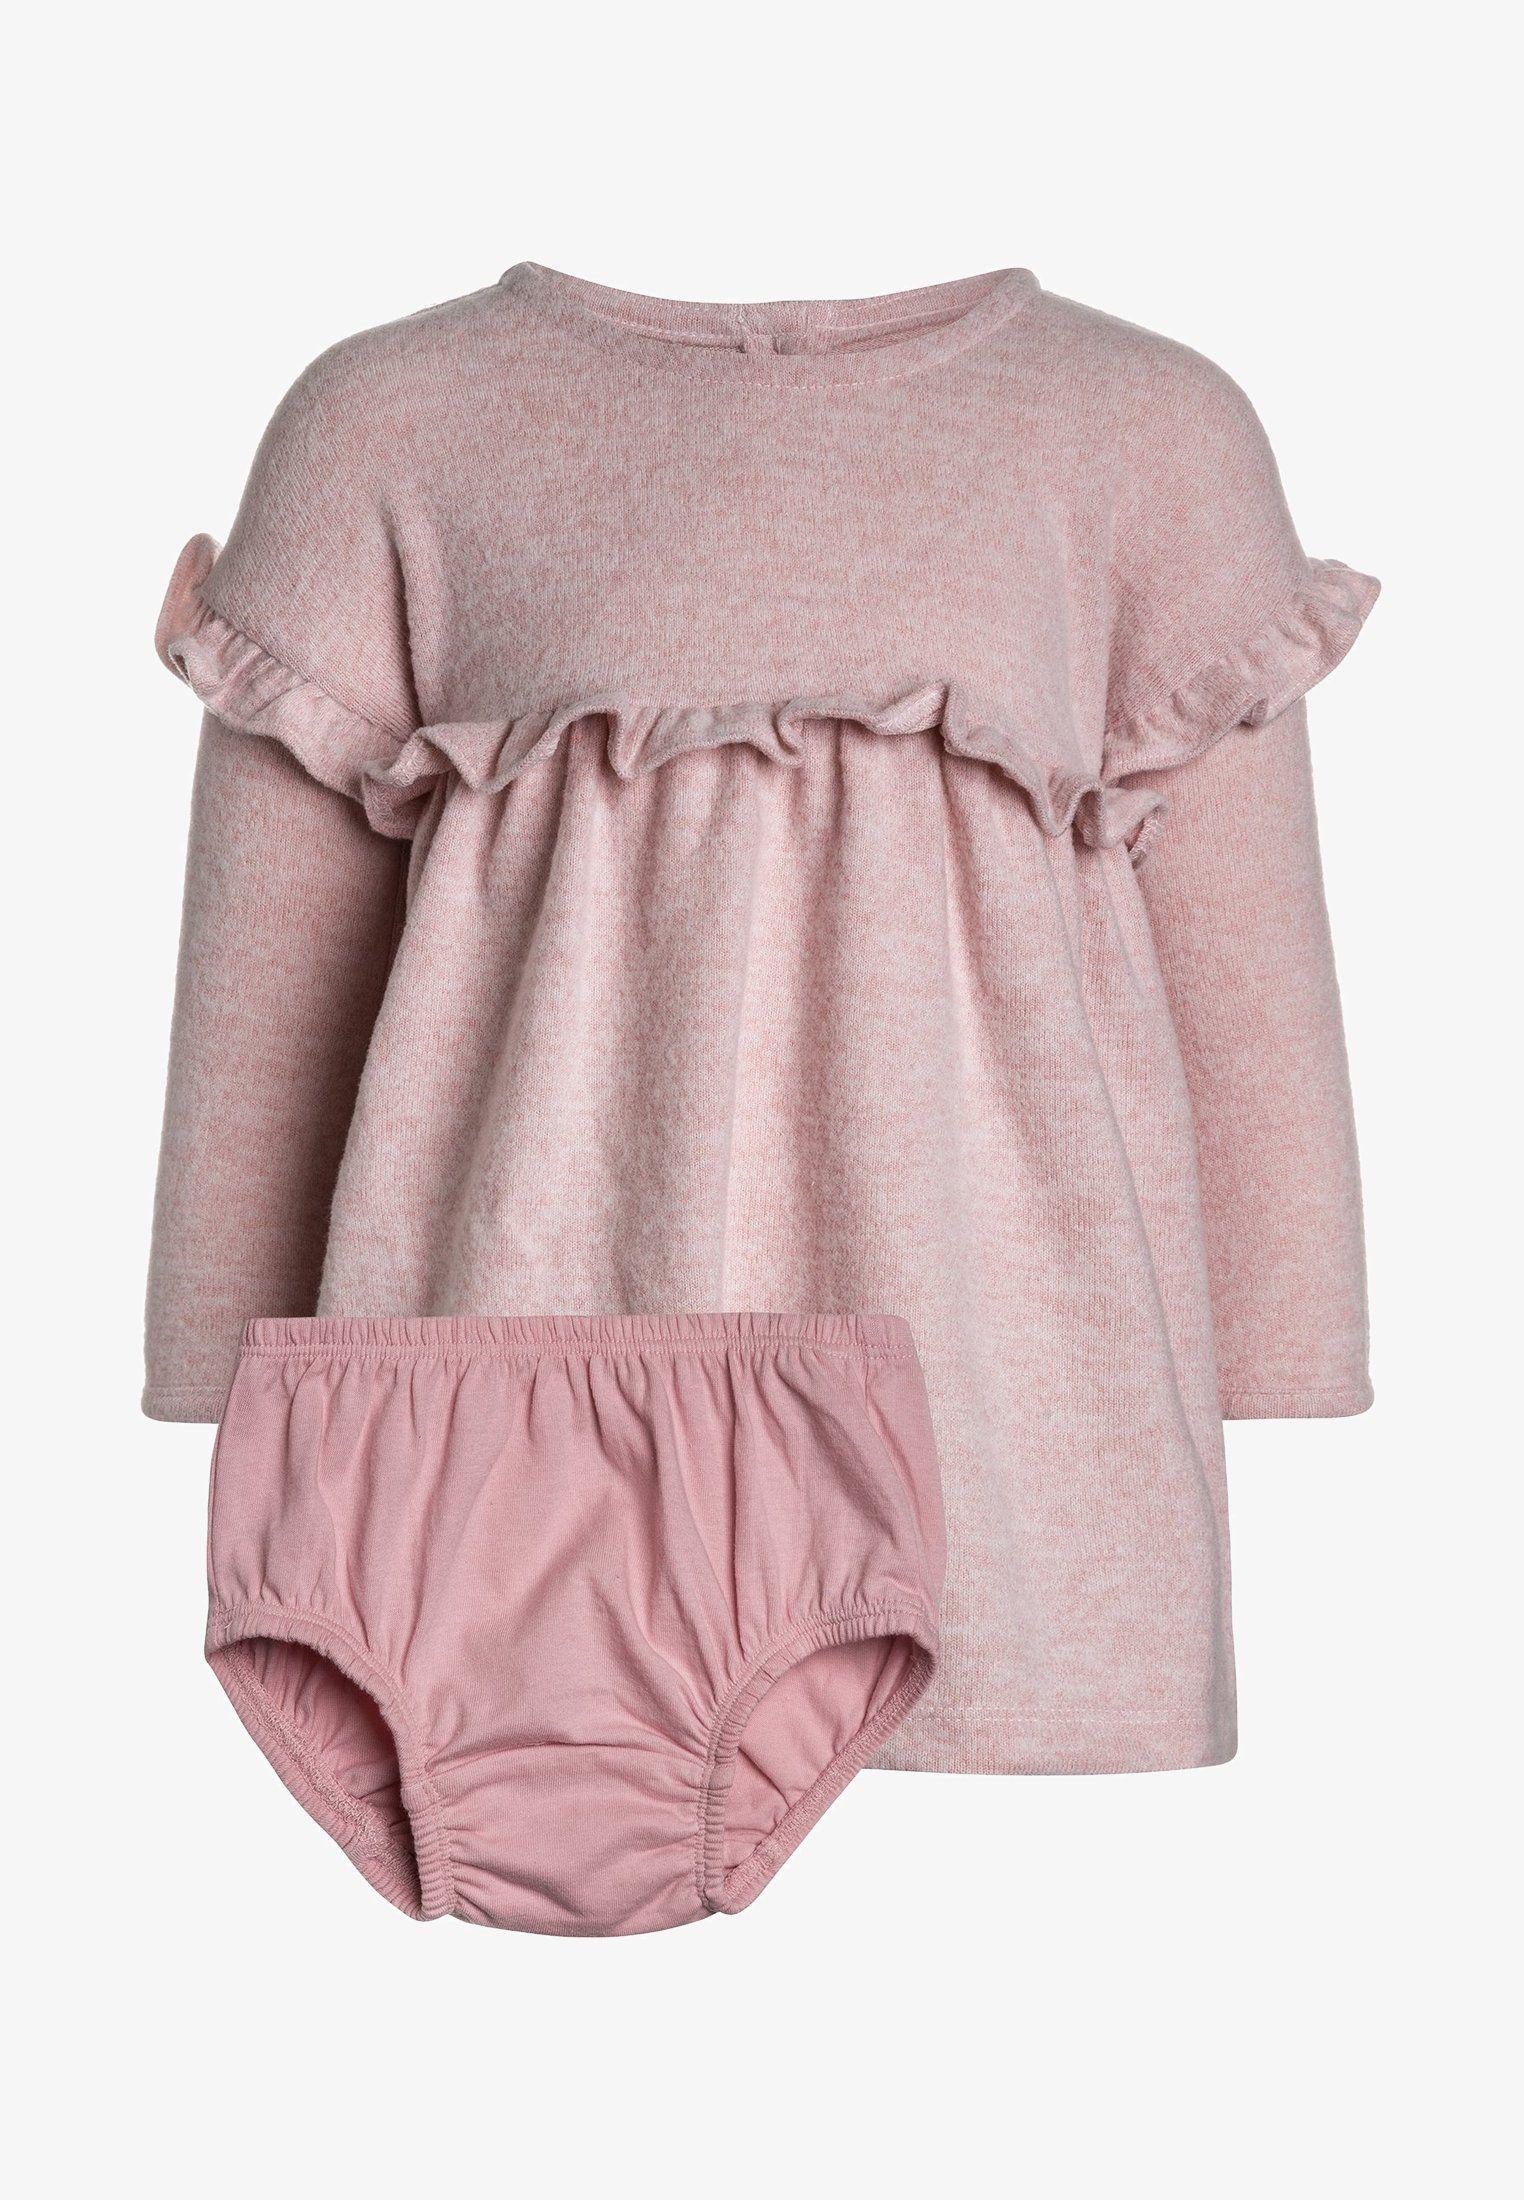 d06c2f29f8f8 BABY GIRL SET - Strickkleid - pink standard   Phoebe Elaine   Pinterest    Baby, Cute baby clothes and Girl outfits